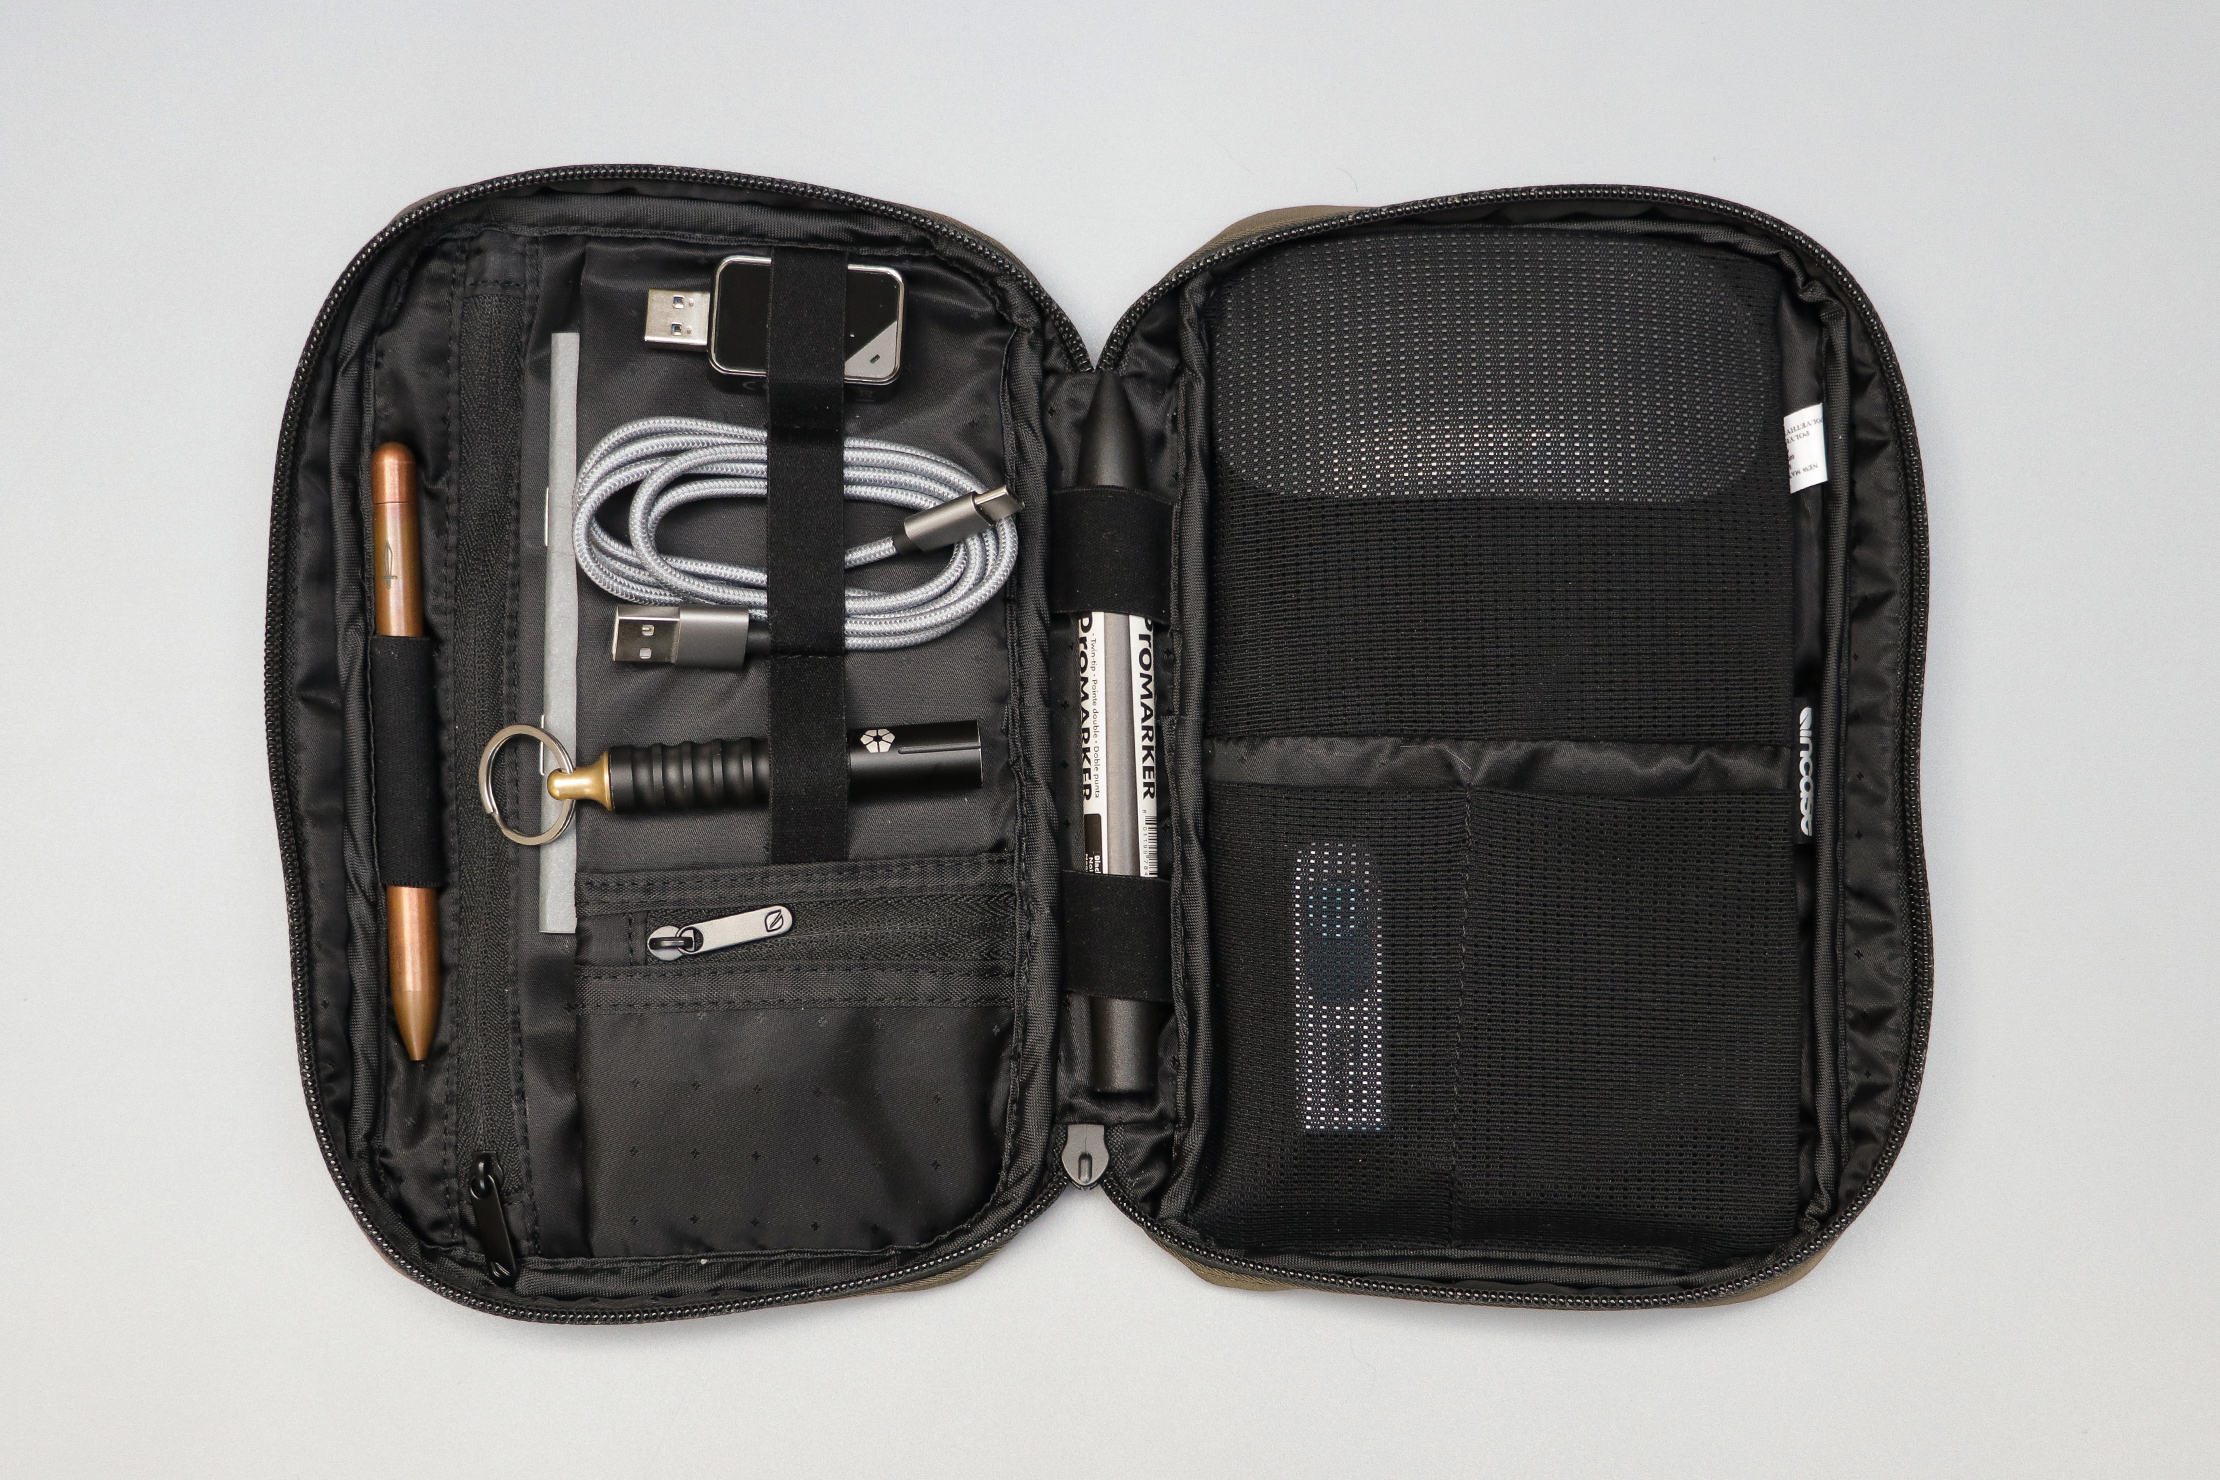 Incase Nylon Accessory Organizer Clamshell Open